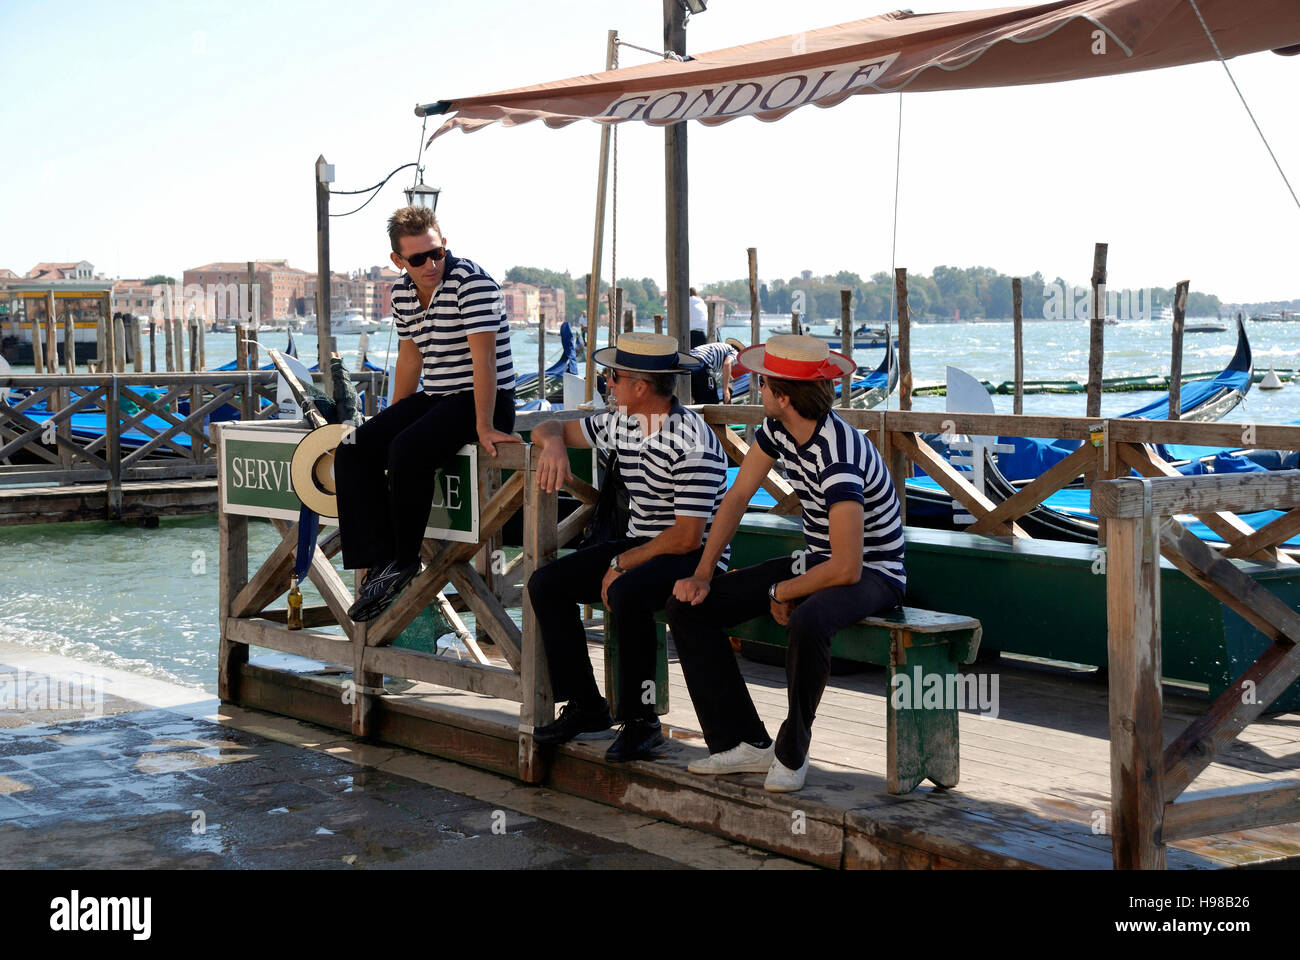 Gondoliers with the typical headgear on a Grand Canal of Venice in Italy. - Stock Image